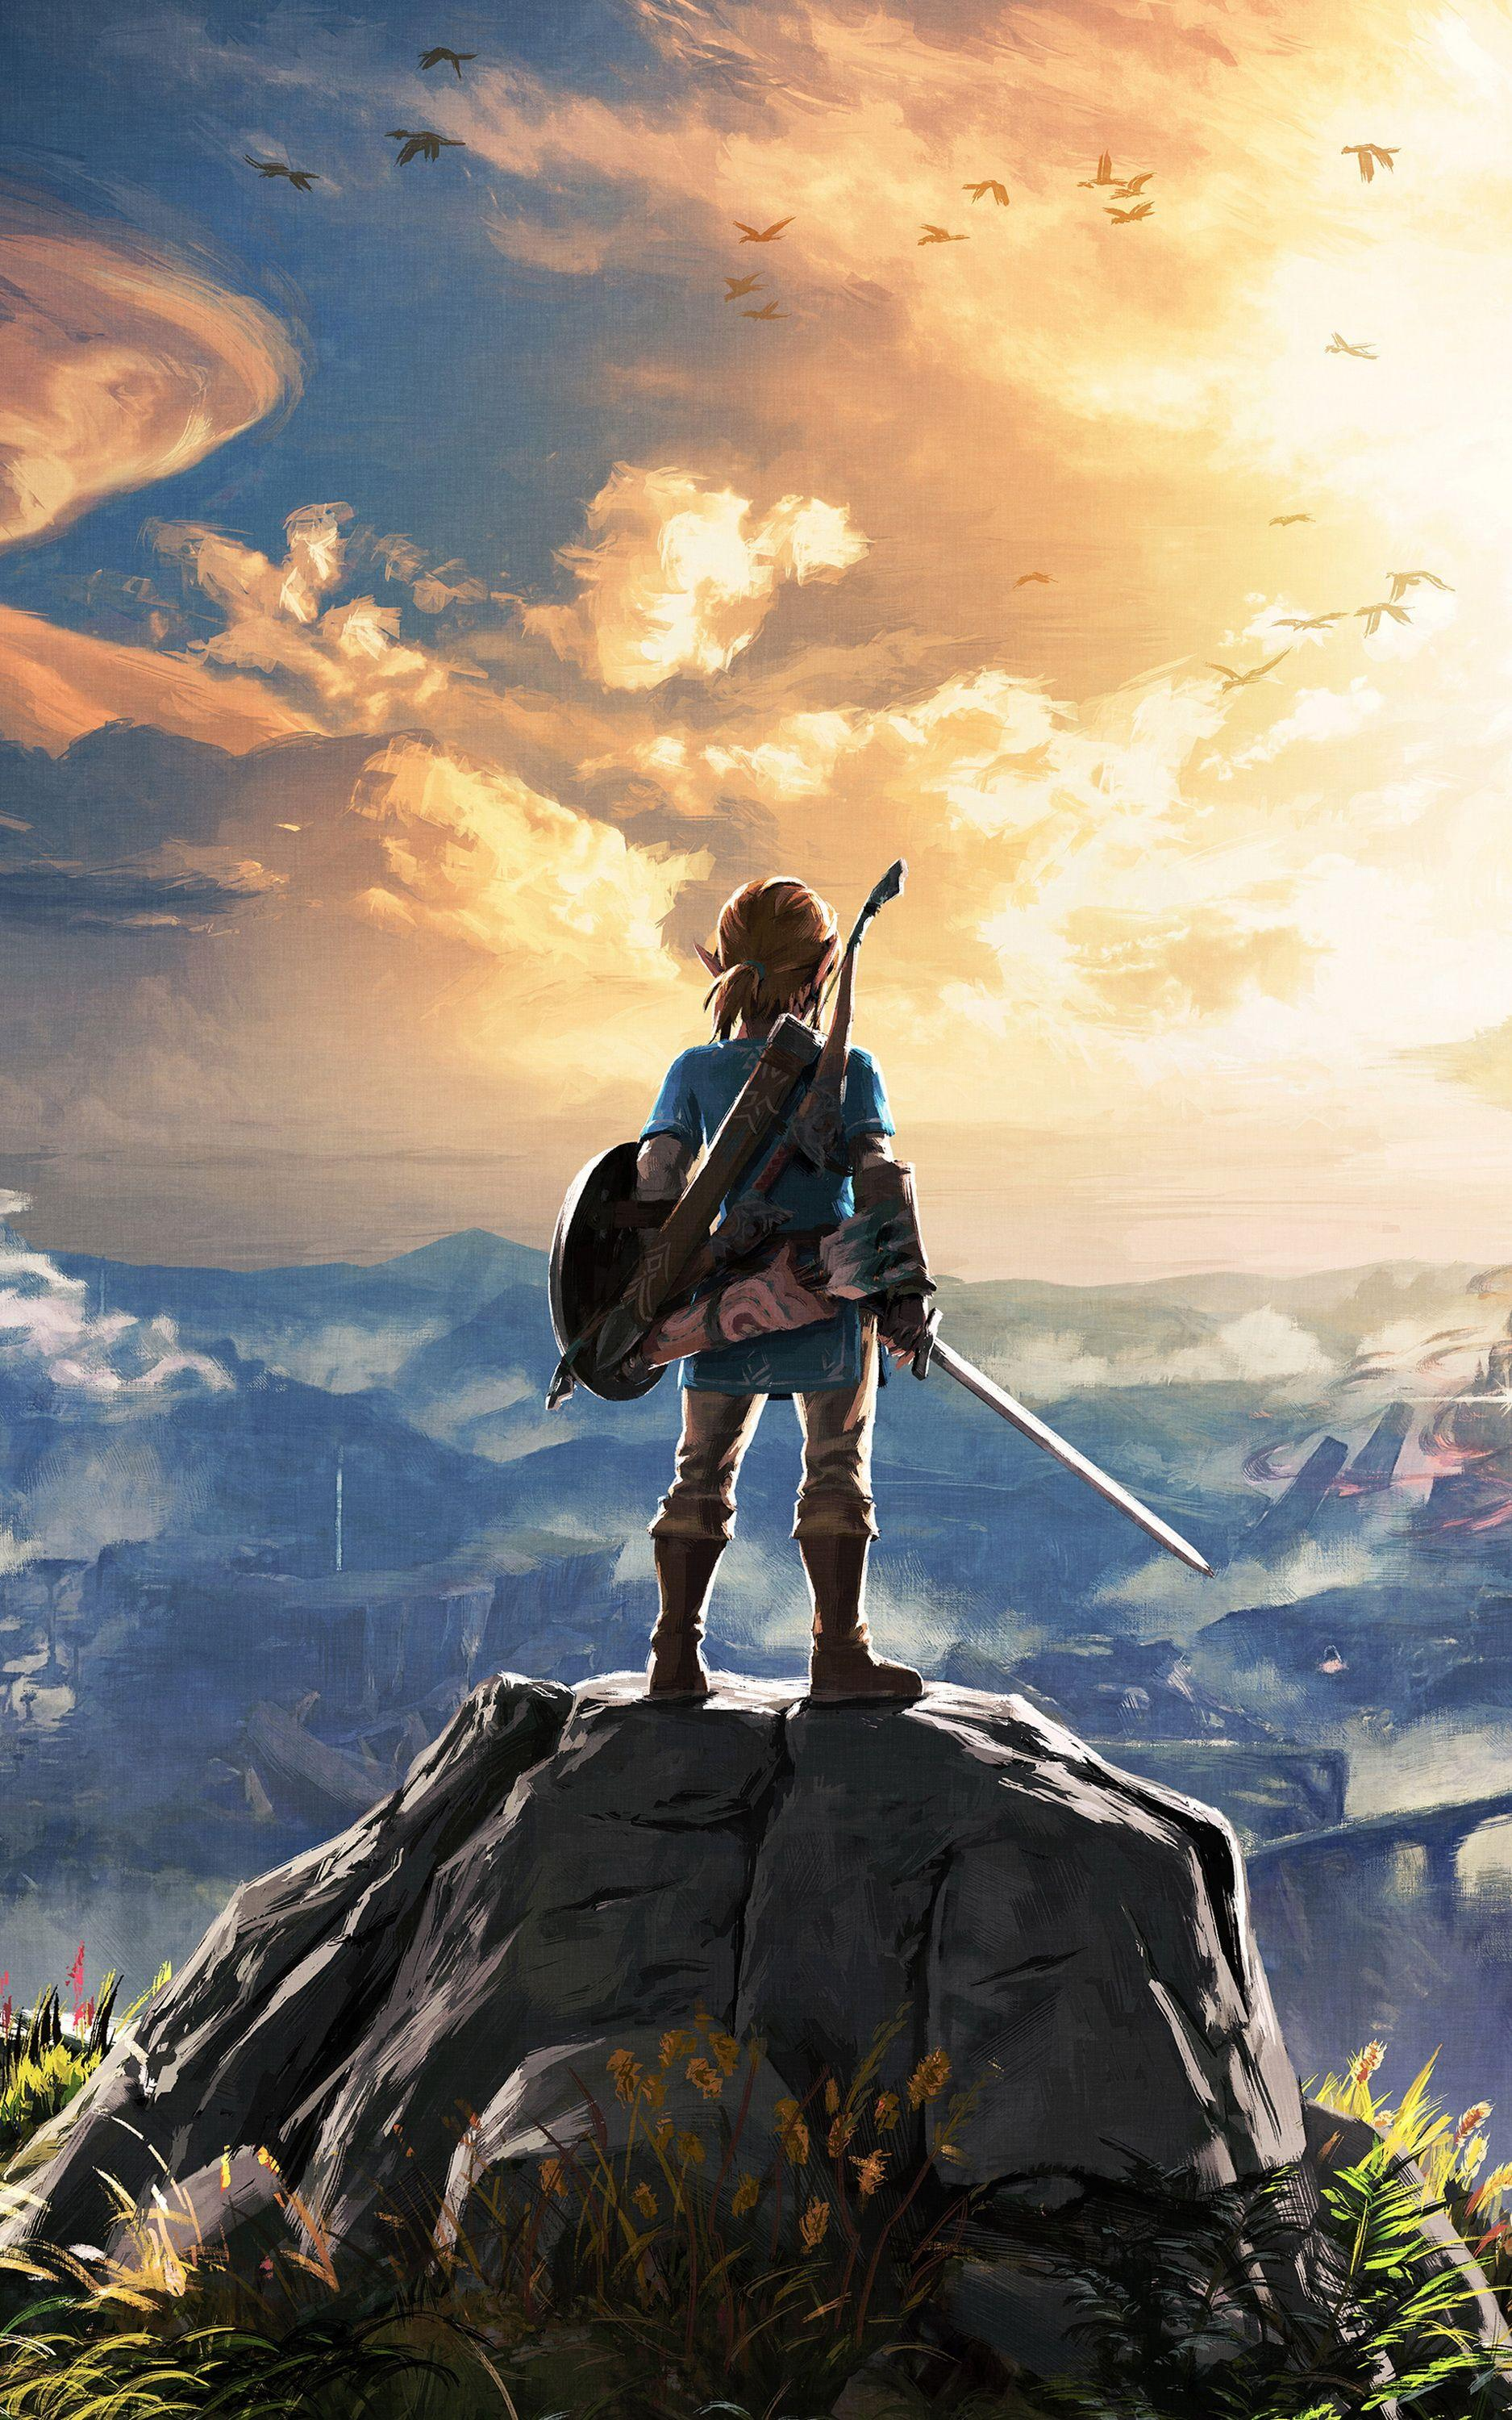 Botw Wallpaper Phone : wallpaper, phone, Zelda, Mobile, Wallpapers, Wallpaper